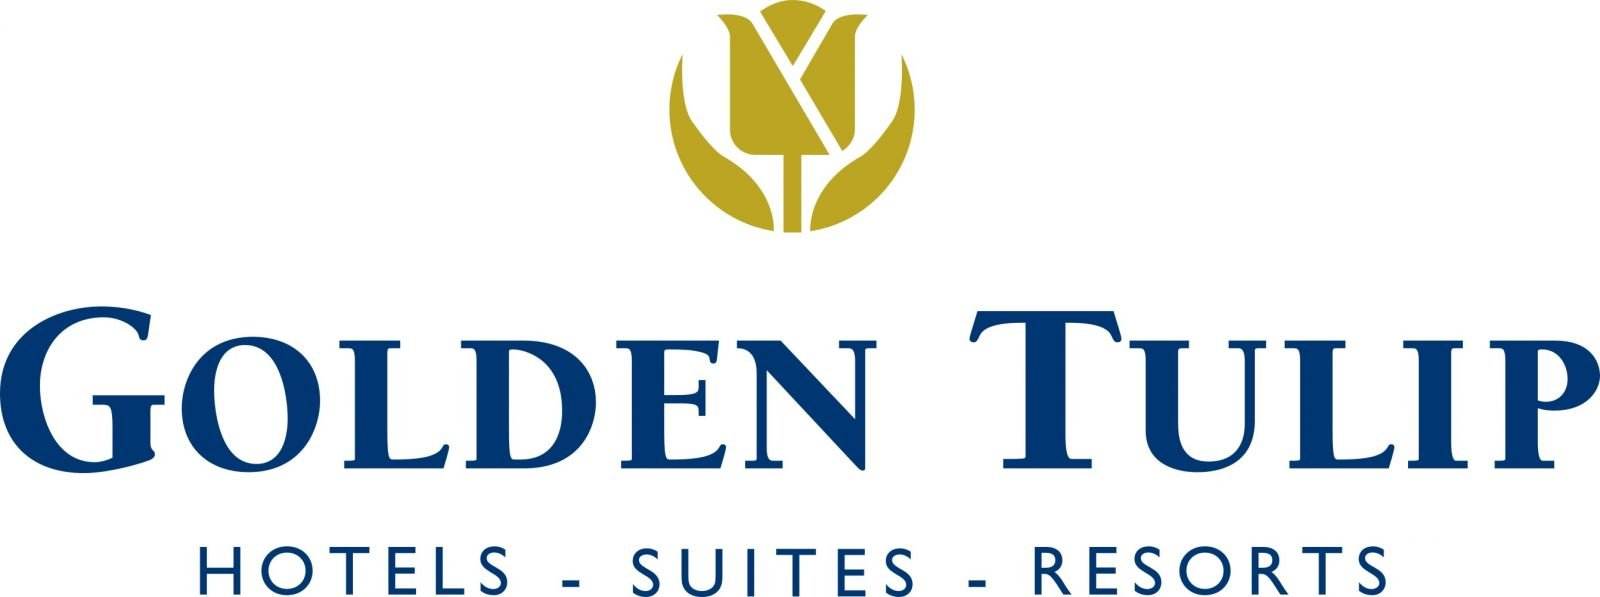 Golden-Tuli-logo